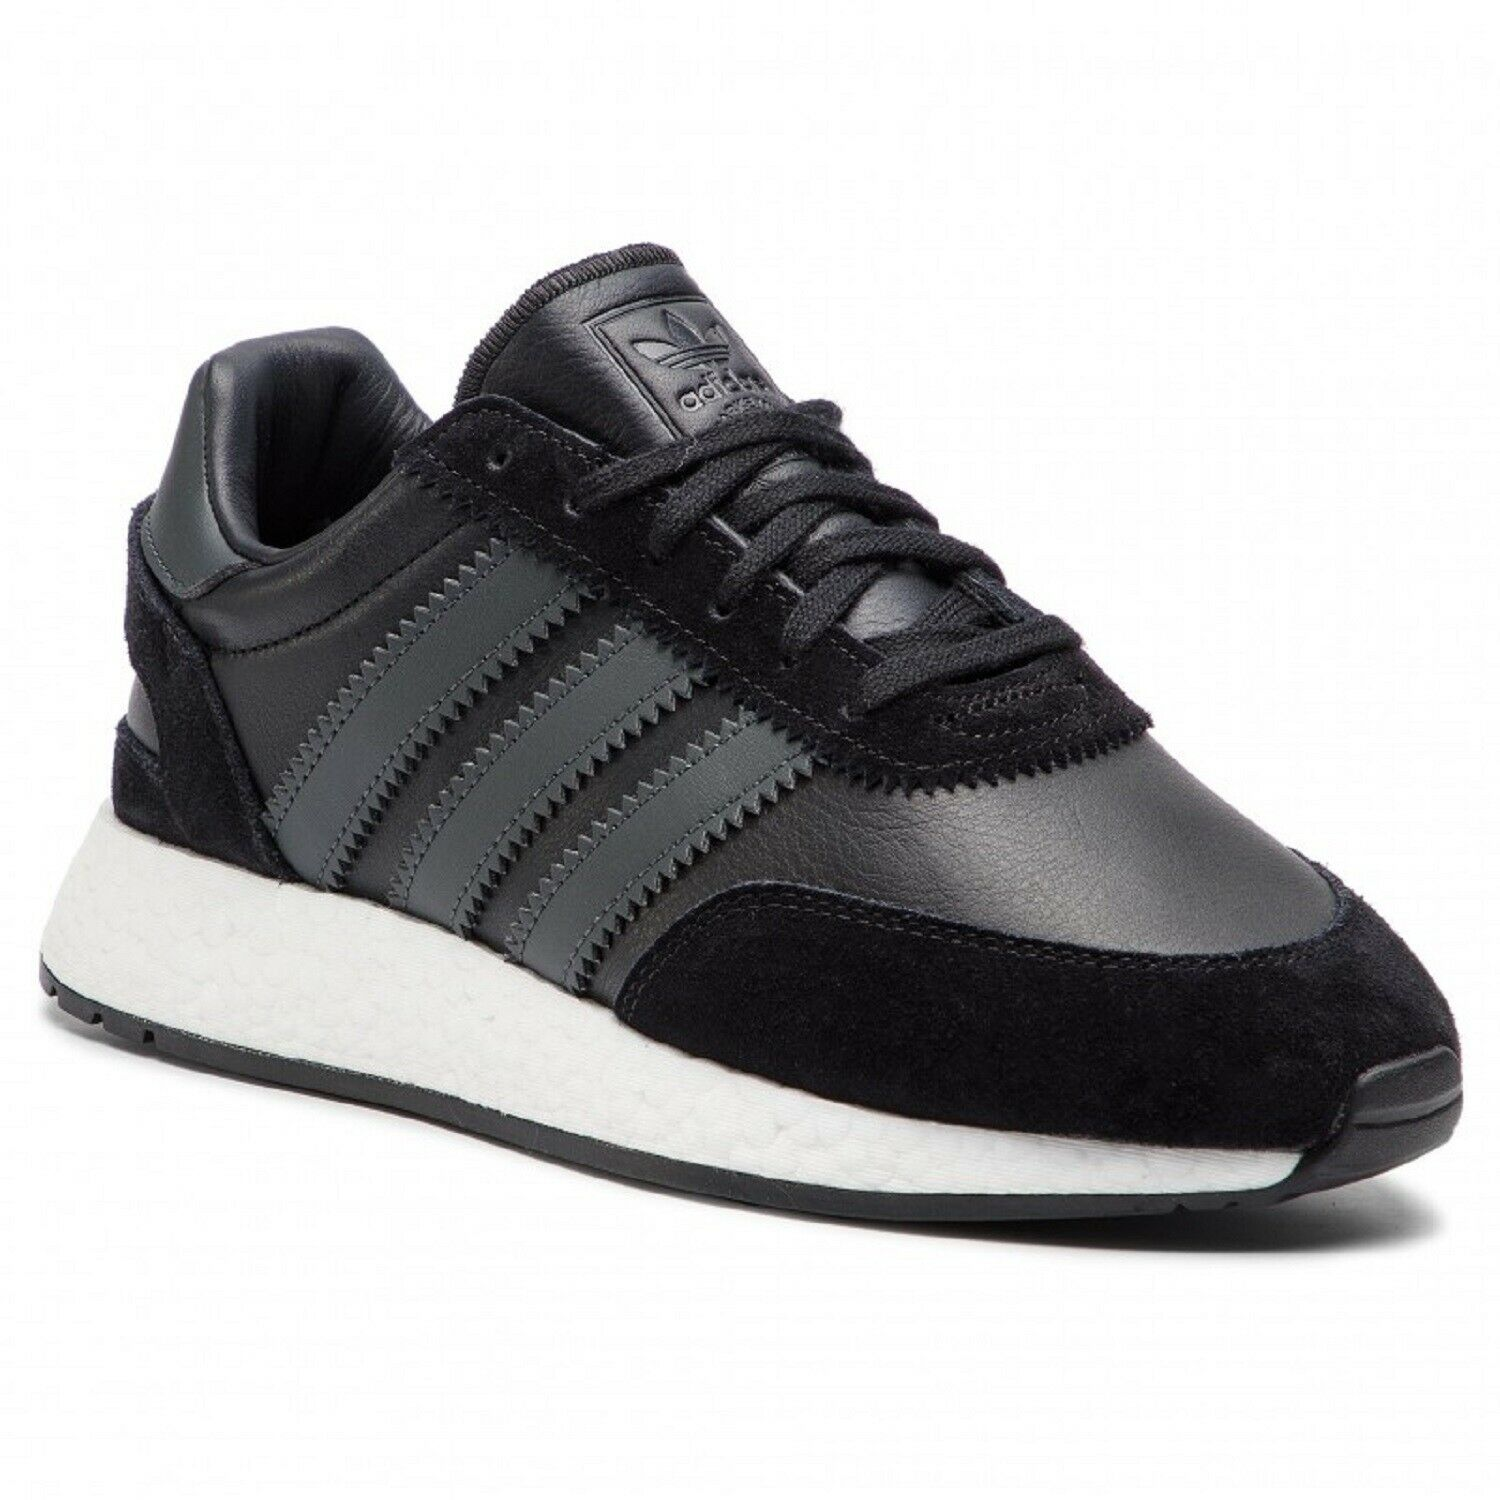 67d4d9c3d NEW MEN S ADIDAS ORIGINALS INIKI I-5923 I-5923 I-5923 RUNNING SHOES ...